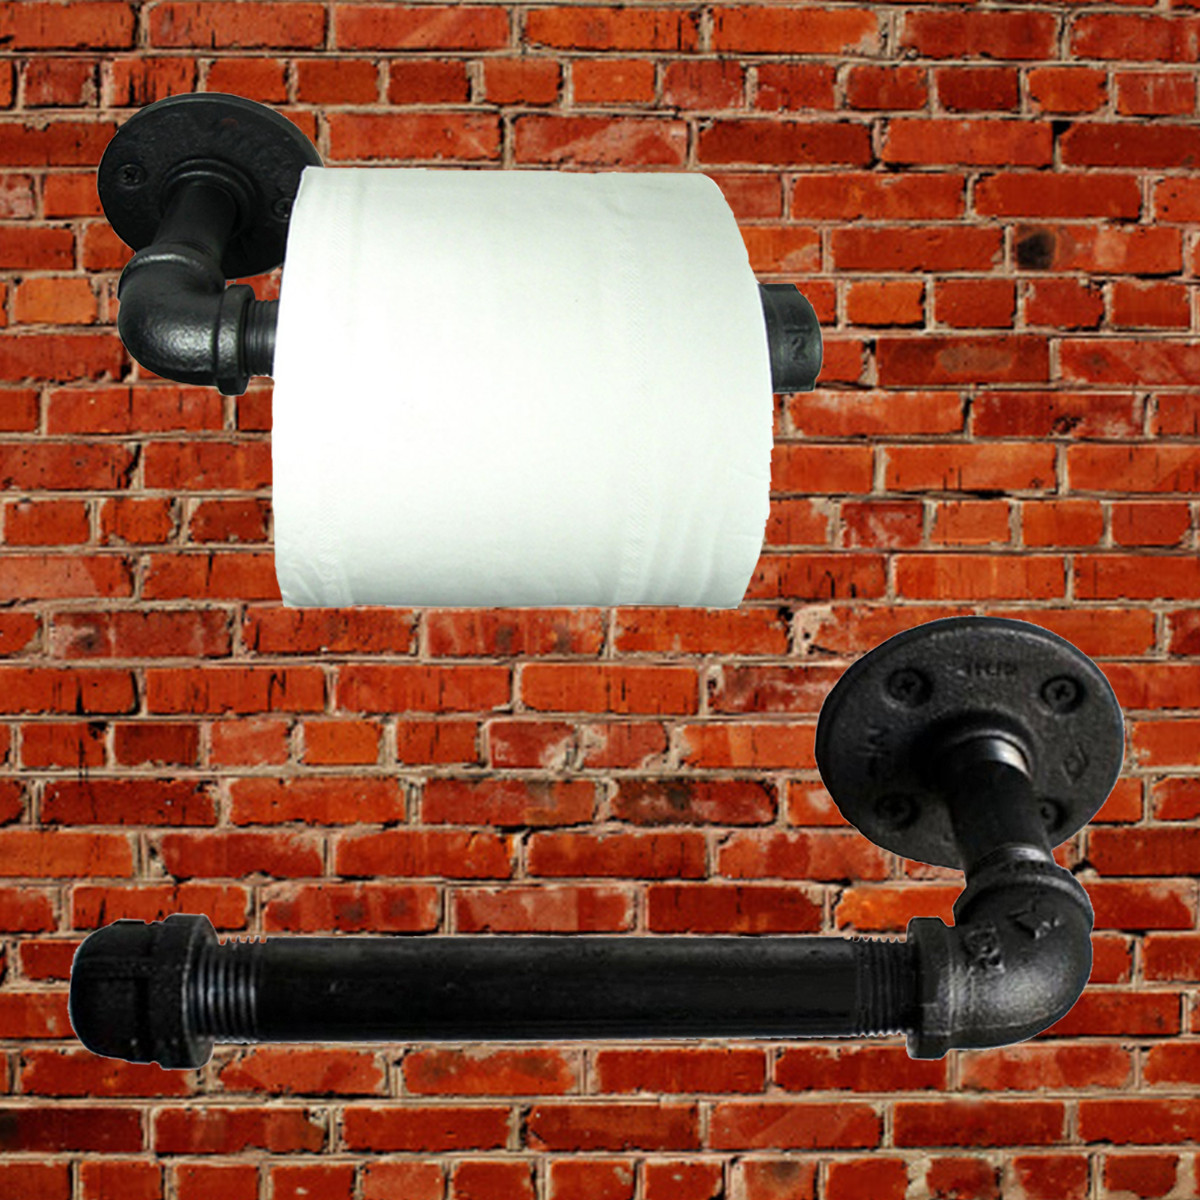 Industrial Pipeline Vintage Paper Towel Rack Bathroom Wall Mount Toilet Paper Holder